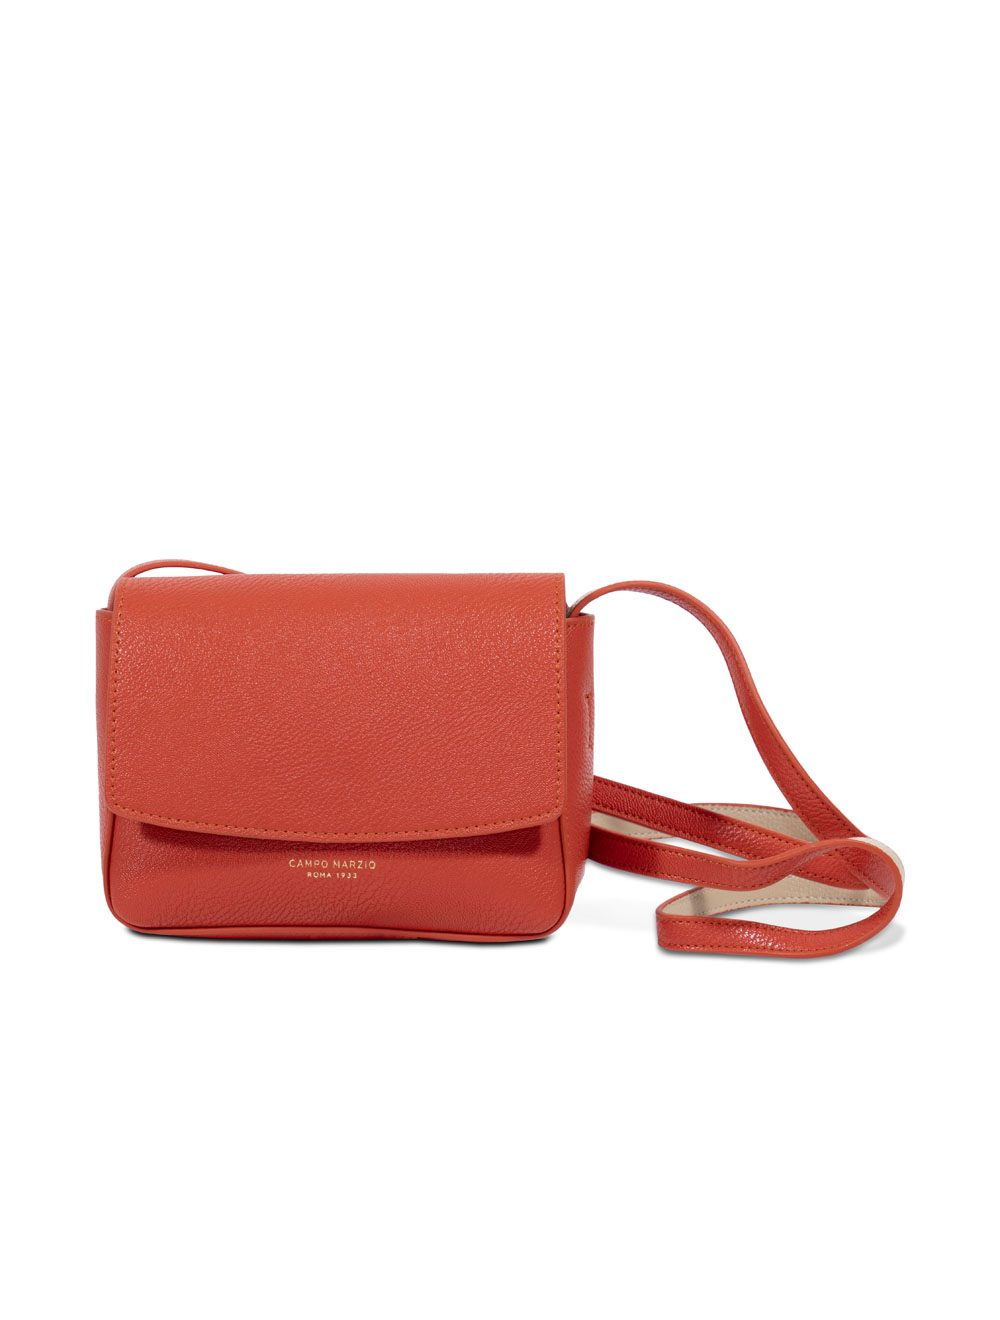 Mini Bag with Crossbody Strap